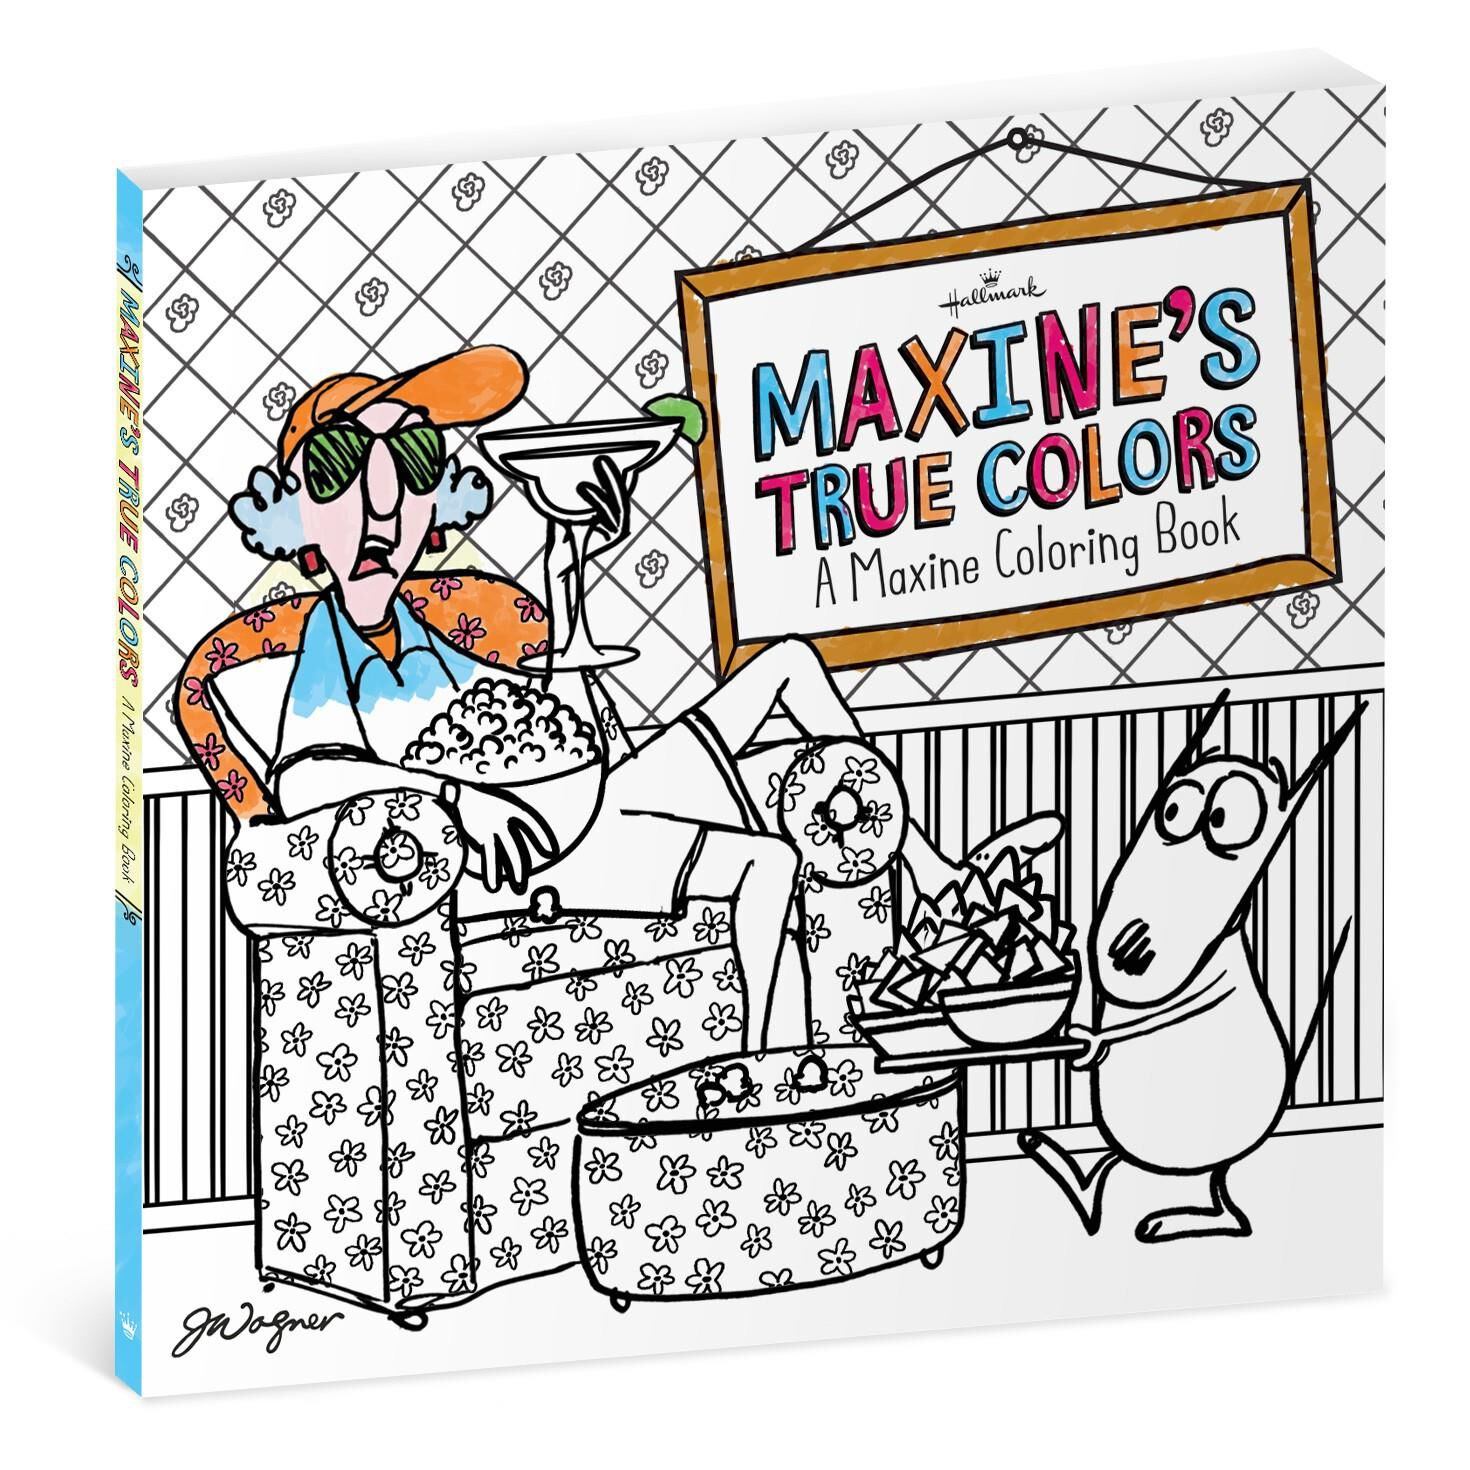 Coloring adults books - Maxine S True Colors Coloring Book For Adults Coloring Books Hallmark